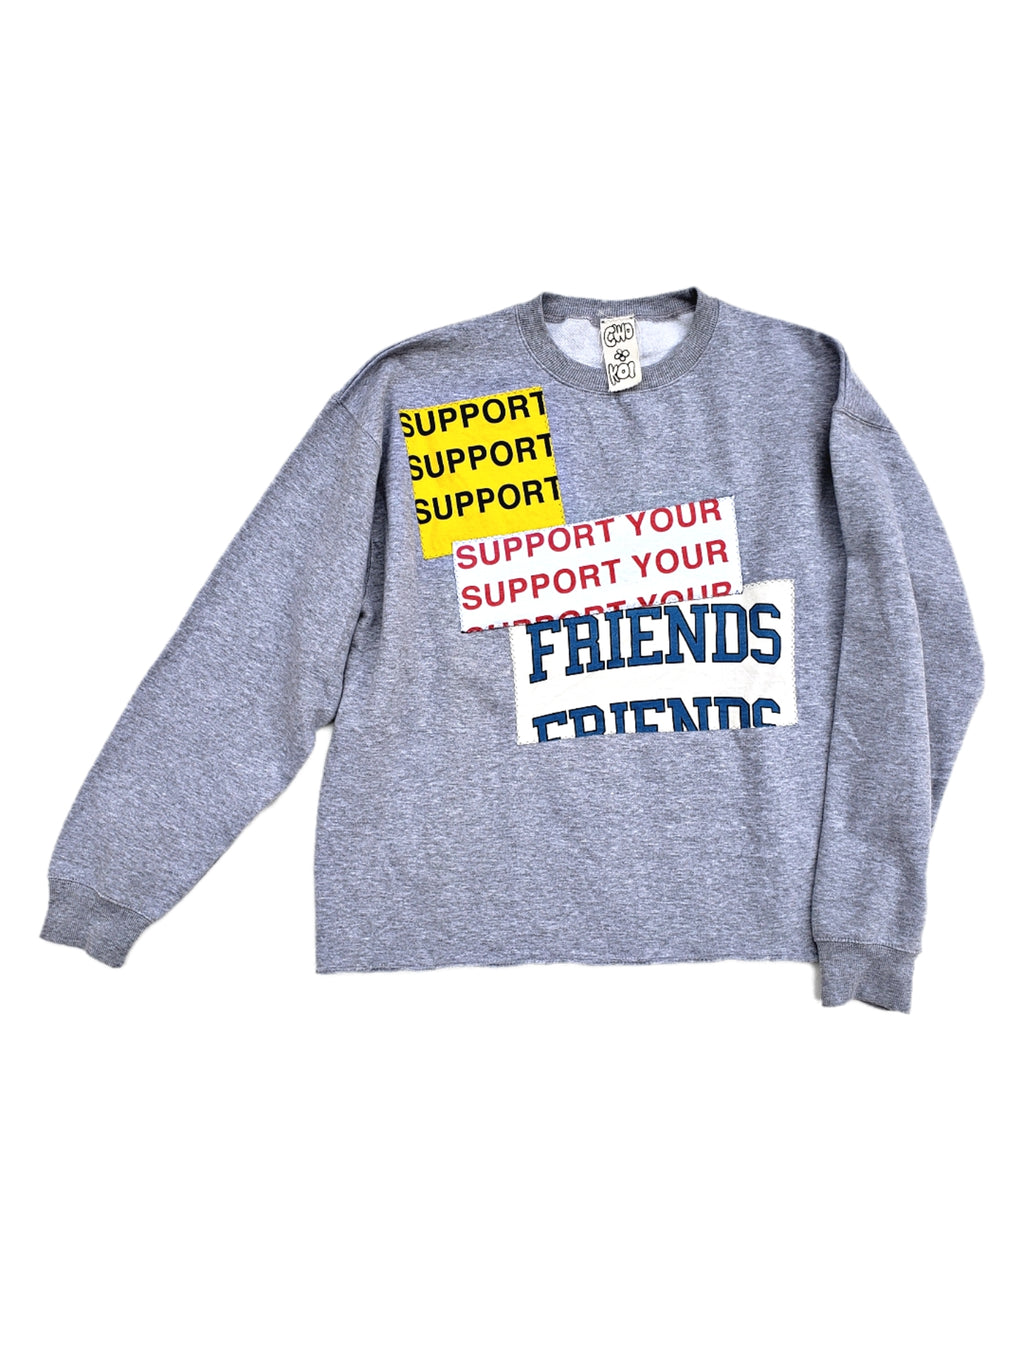 SUPPORT YOUR FRIENDS - CWD 003